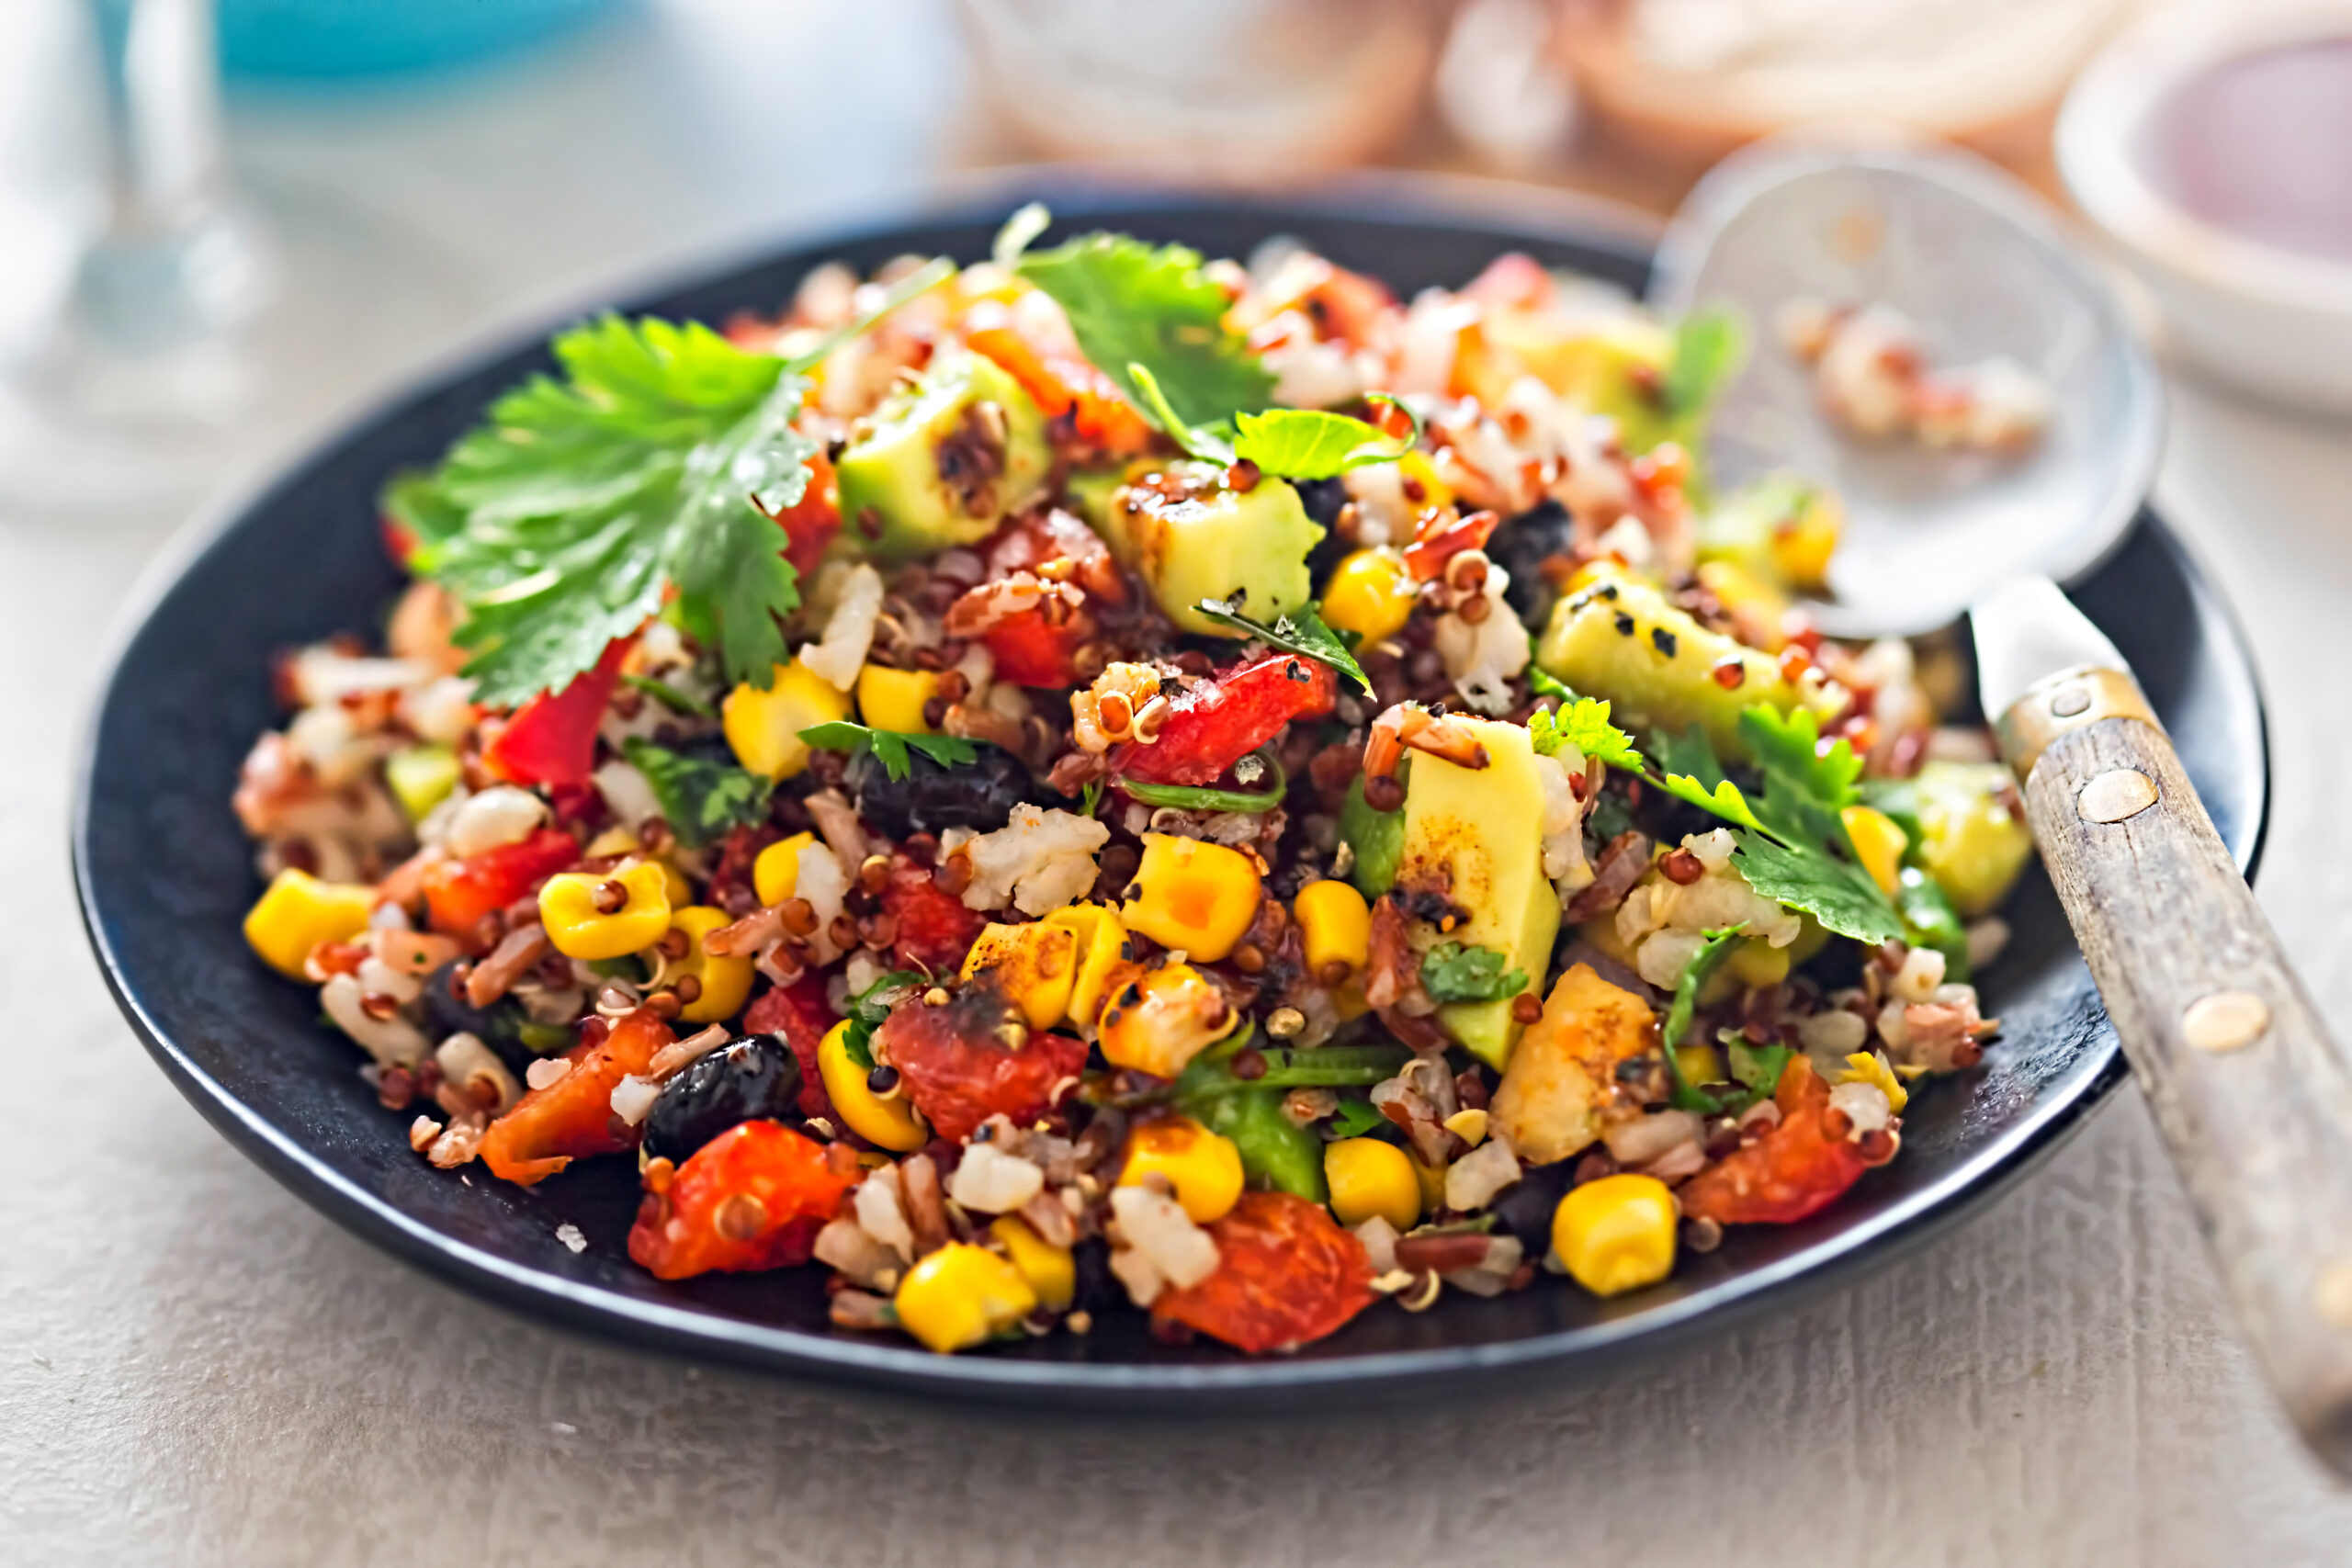 BEST EVER QUINOA SALAD